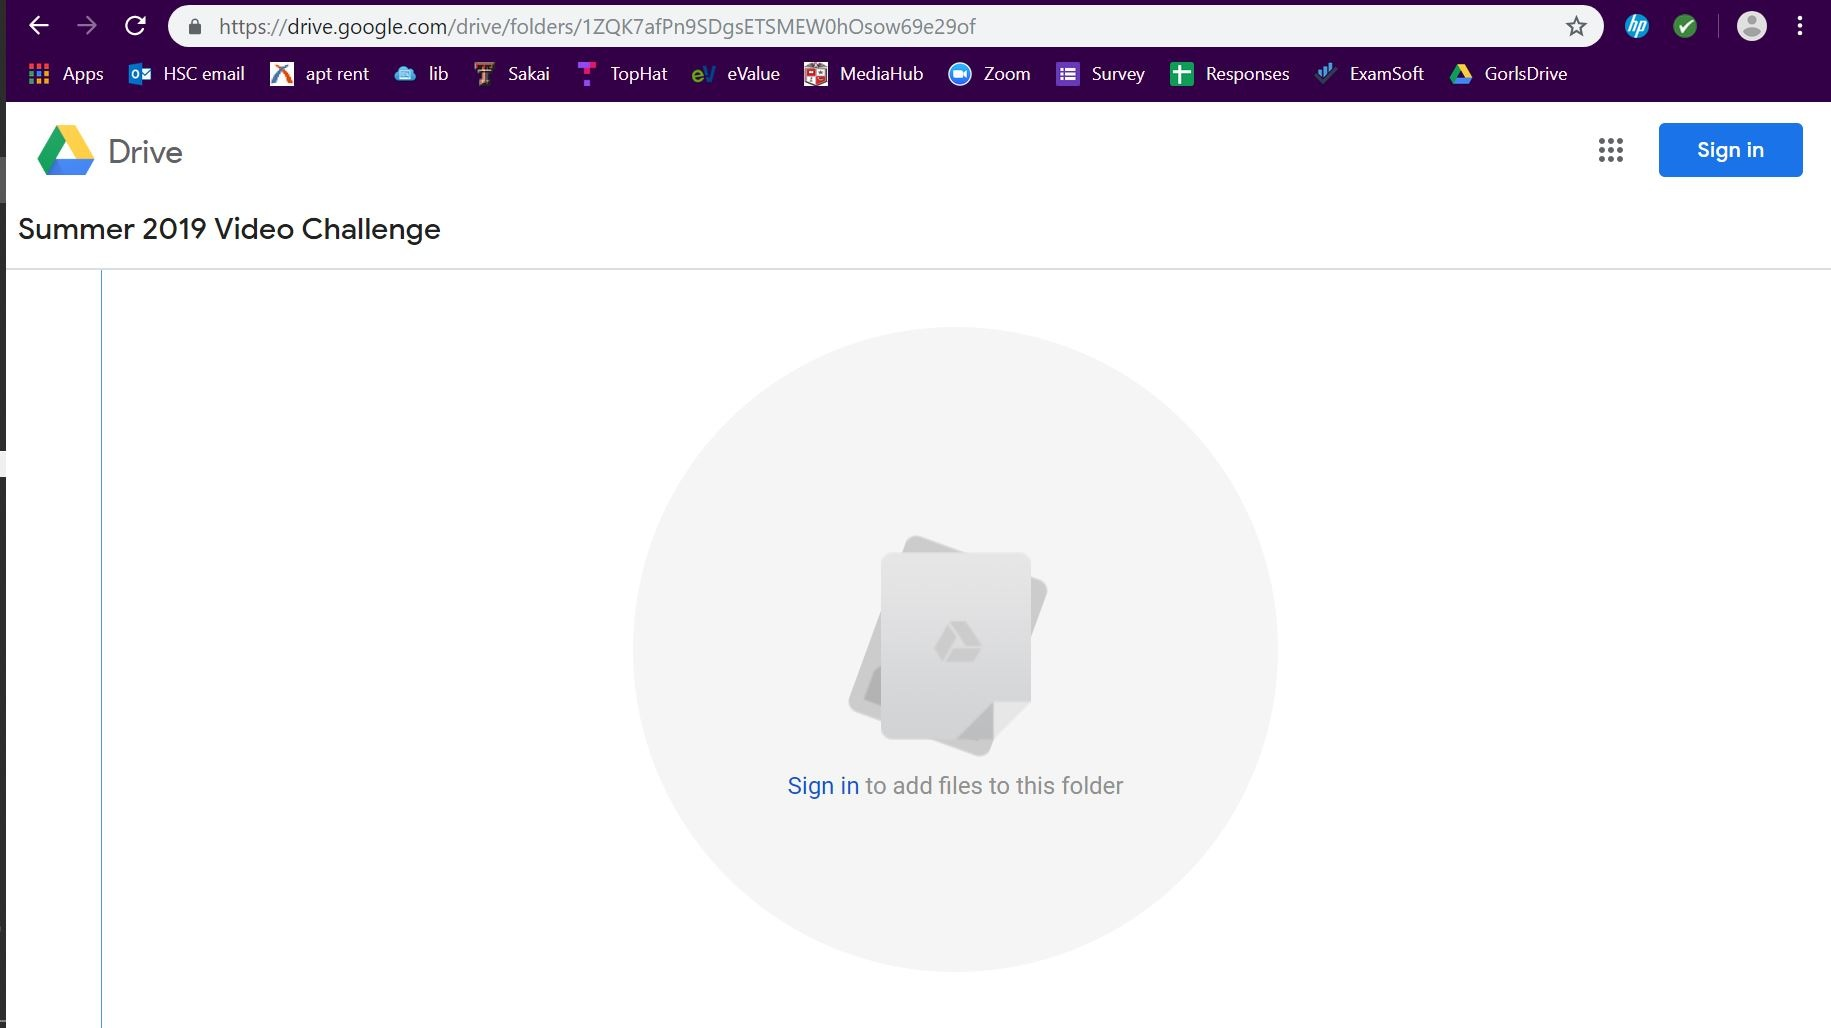 Image A: If you don't have a Google account or you need to sign into yours, this is the screen you'll see after you follow the link to the Google Drive.